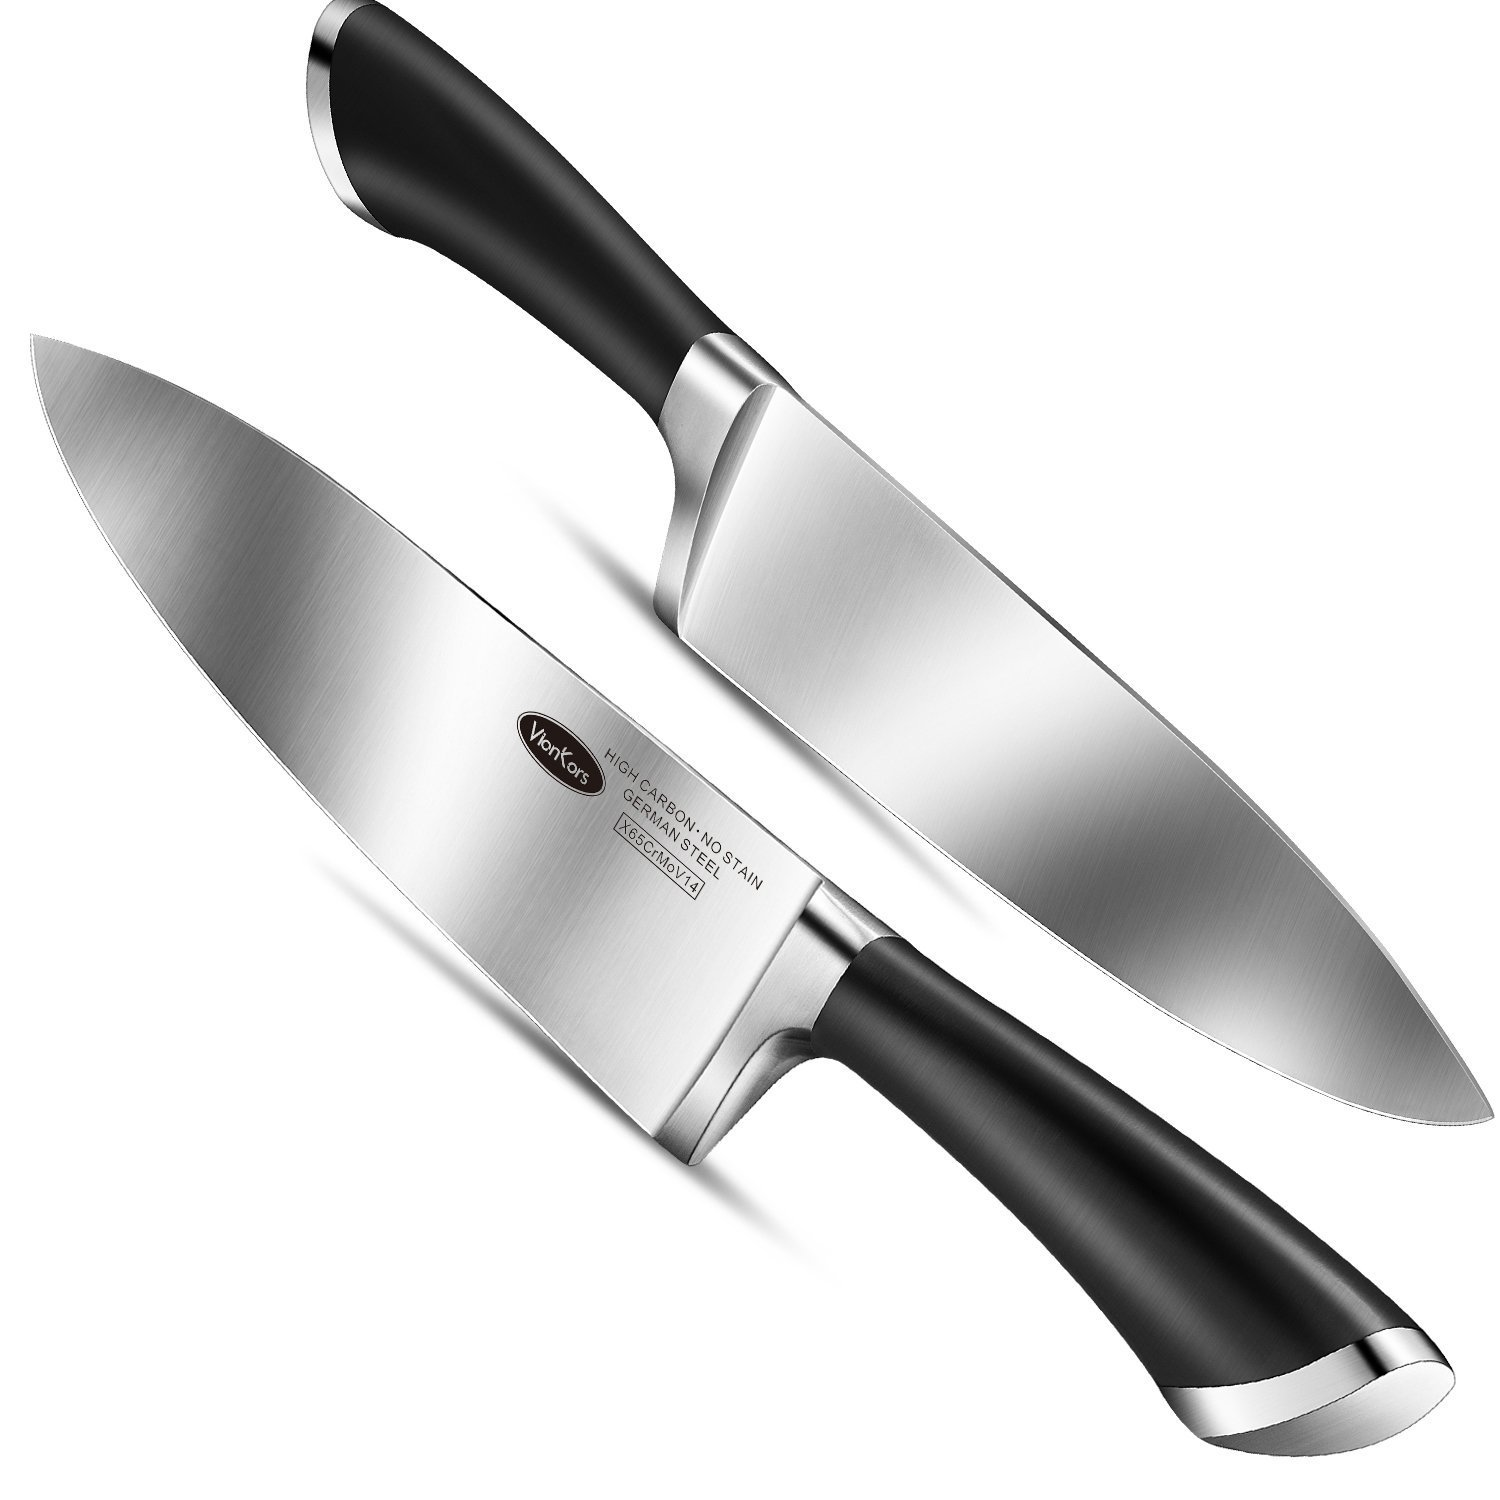 Kitchen Knife 8 inches Chef Knife - VIANKORS pro German stainless steel sharp knives, Highly Recommended,Razor Sharp, Ergonomic handle, For home & restaurant by Viankors (Image #2)